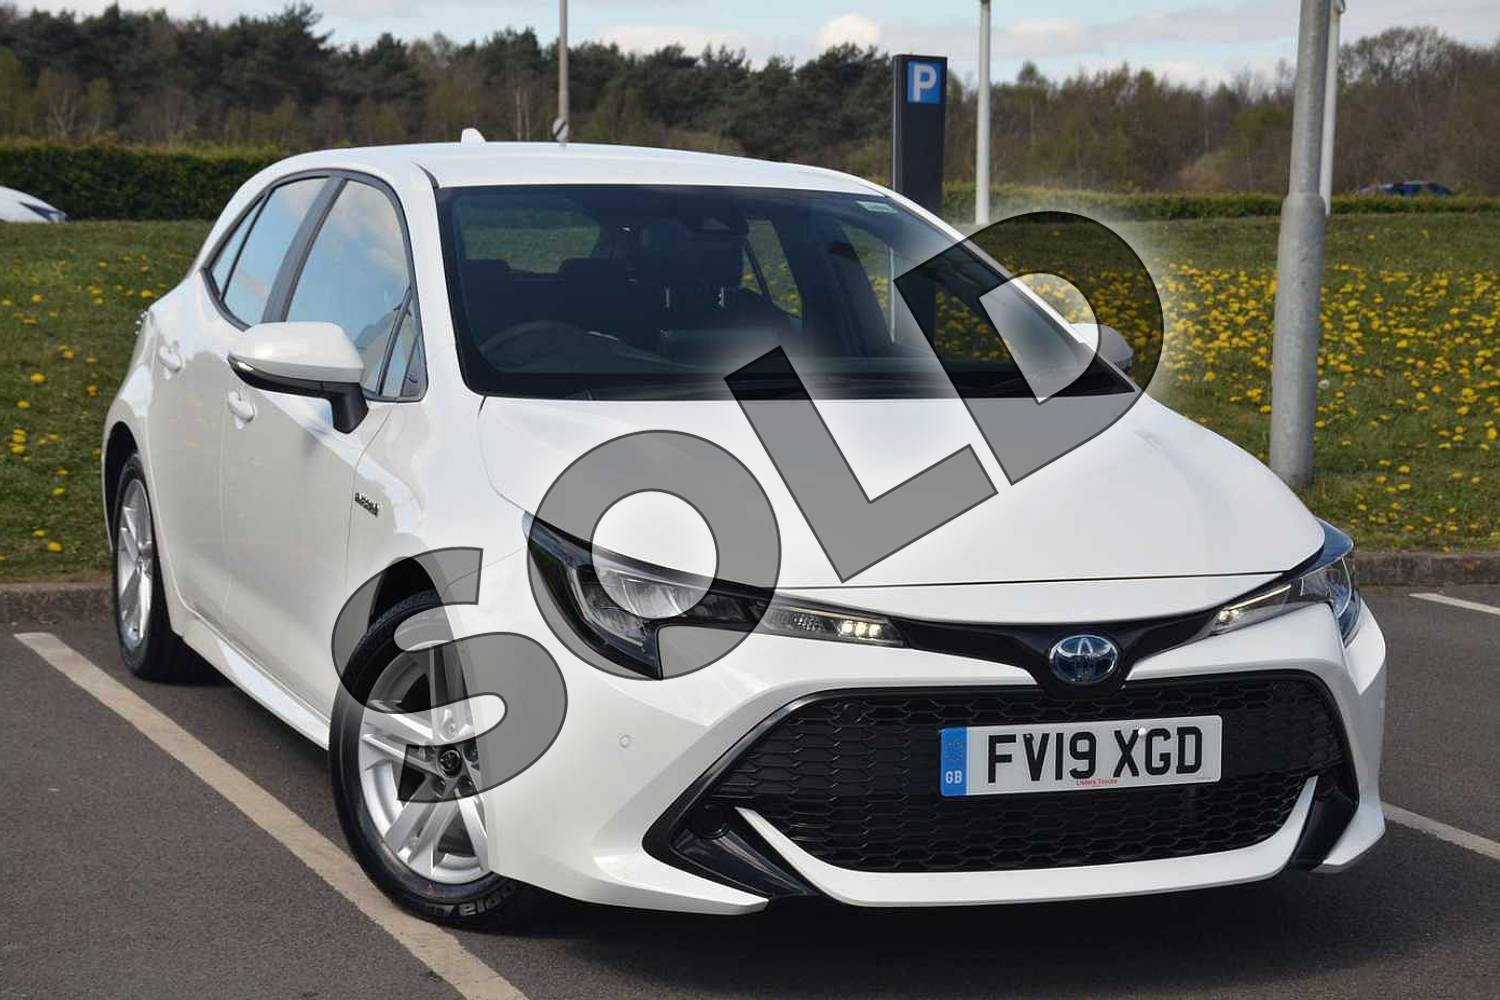 2019 Toyota Corolla Hatchback 1.8 VVT-i Hybrid Icon Tech 5dr CVT in White at Listers Toyota Lincoln